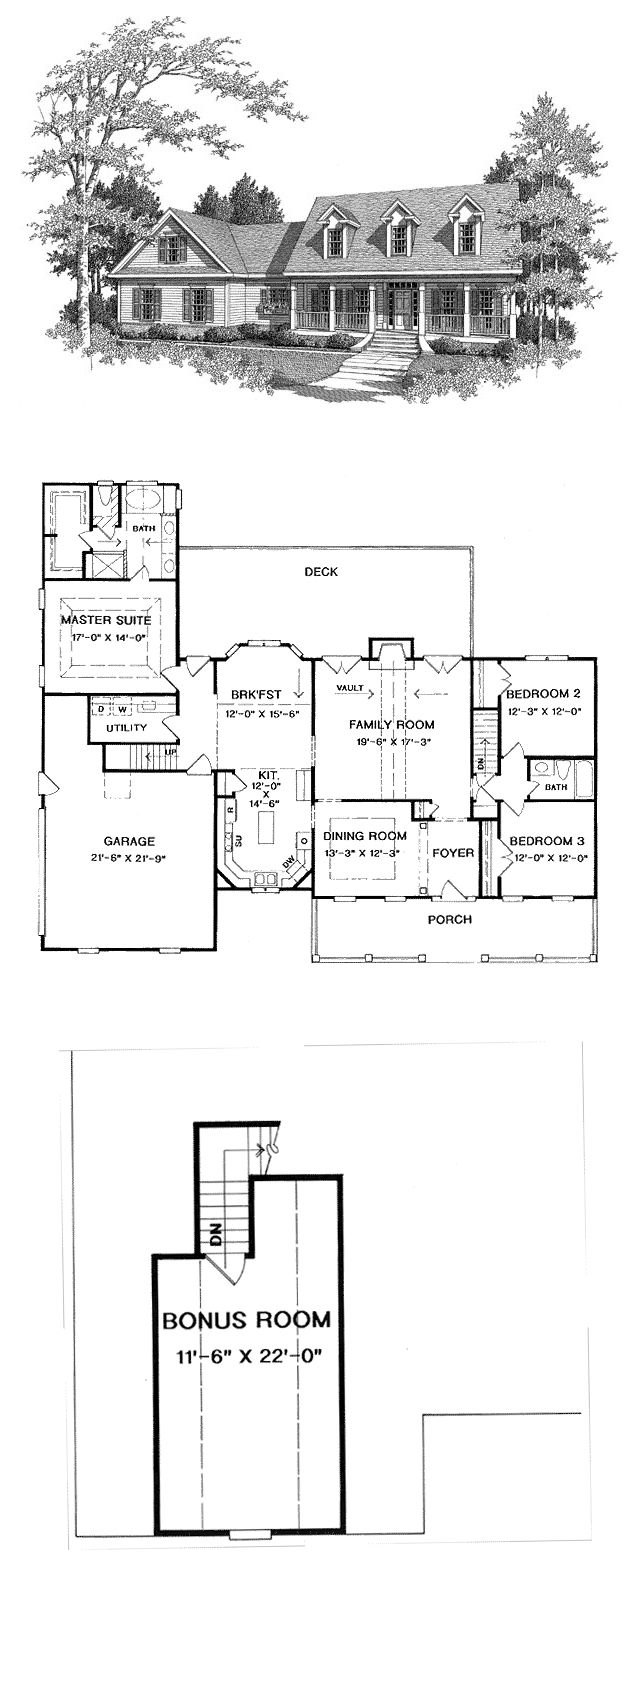 Cape Cod Style House Plan 58165 With 3 Bed 2 Bath 2 Car Garage Cape Cod House Plans Large House Plans Beach House Plans